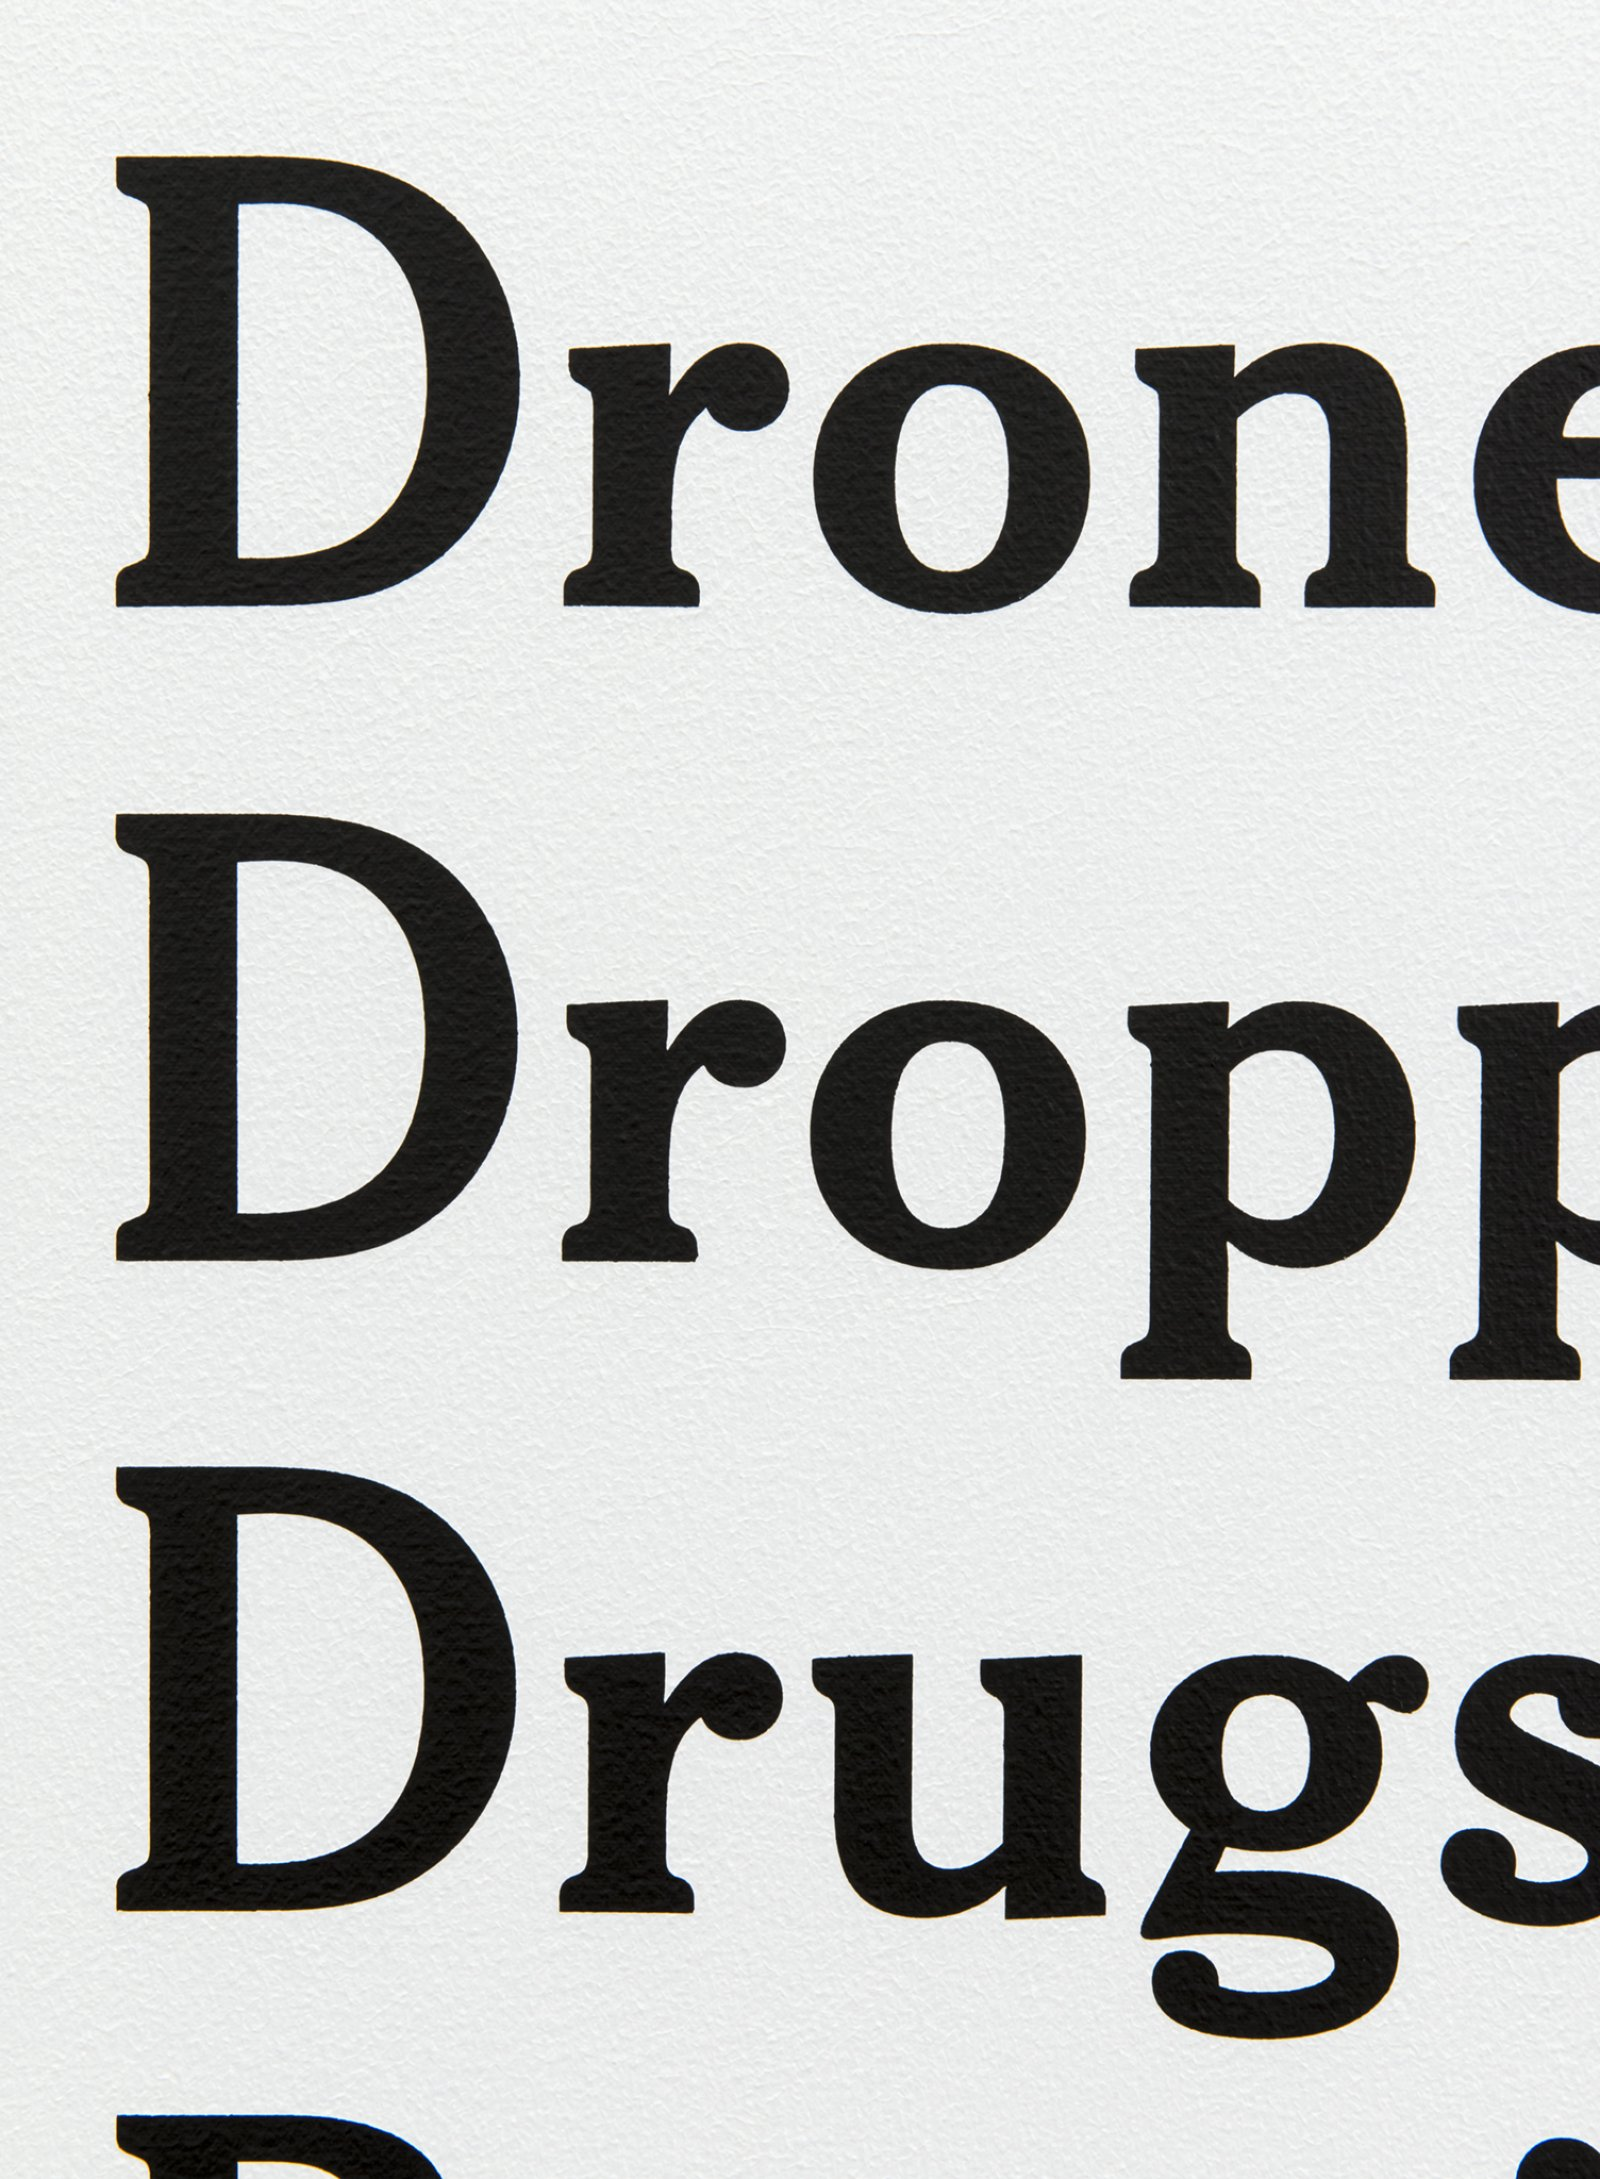 Ron Terada, Drones Keep Dropping Drugs and Porn into Prisons, 18 June 2017, 9:00 am (detail), 2017, acrylic on canvas, 30 x 24 in. (76 x 61 cm) by Ron Terada